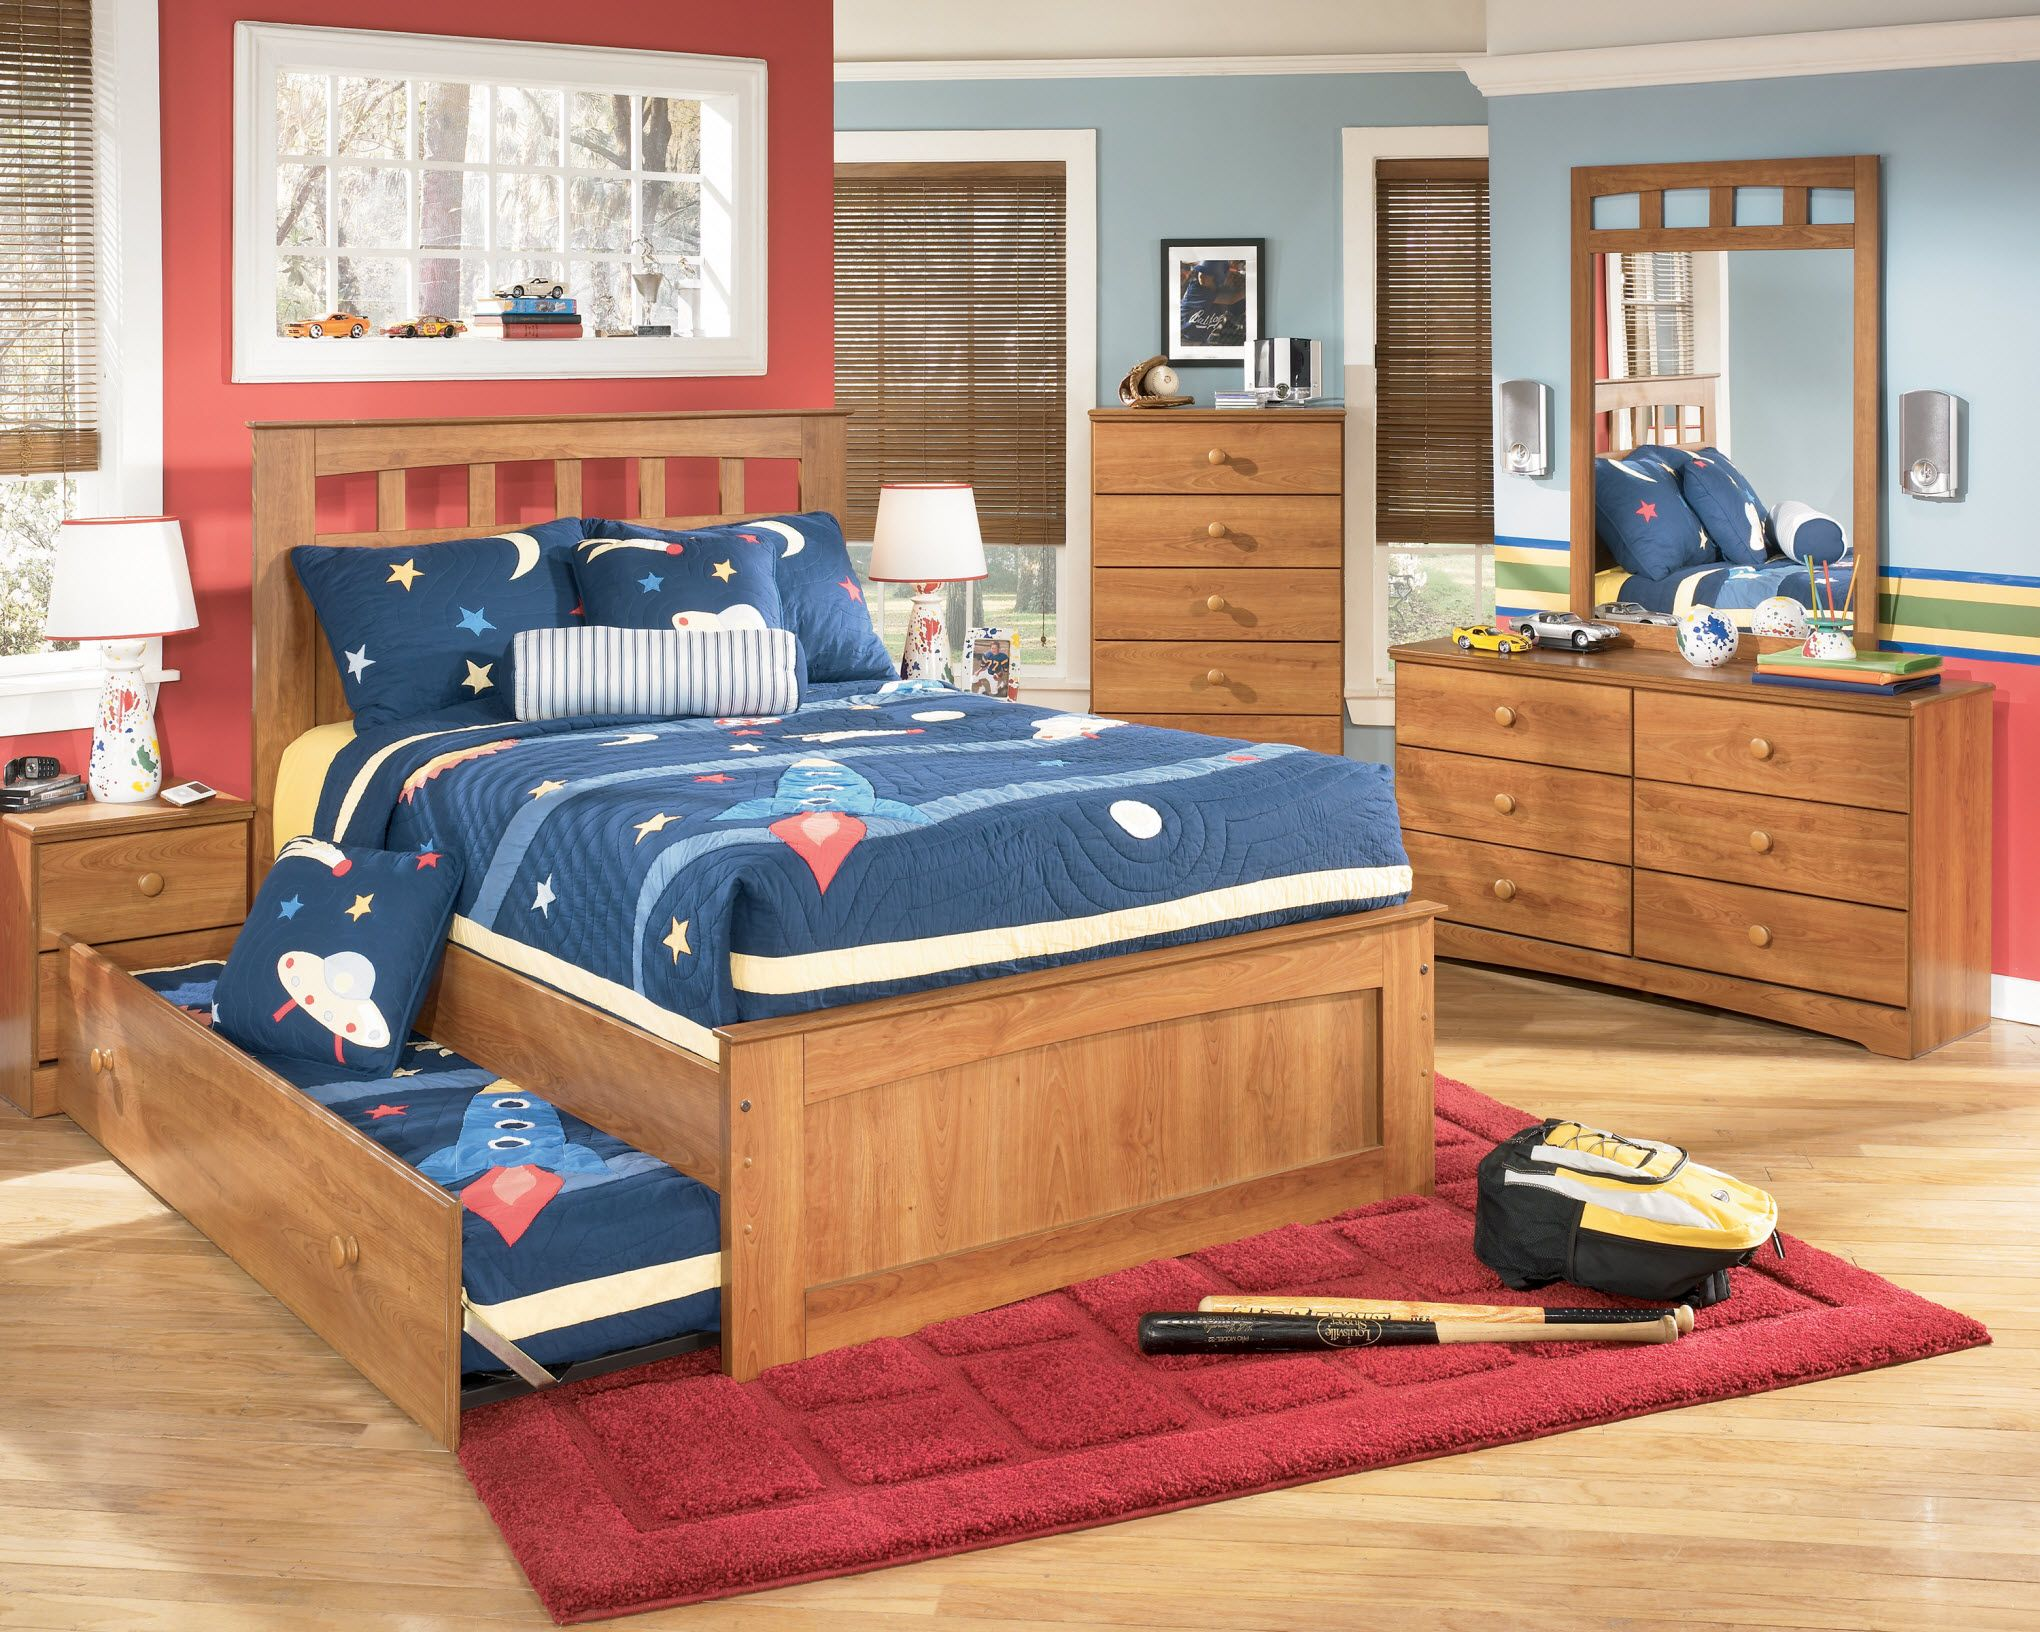 16 Cool Boys Bedroom Sets Ideas Ome Speak Boys Bedroom Sets Boys Bedroom Sets With Regard To Really Encourage